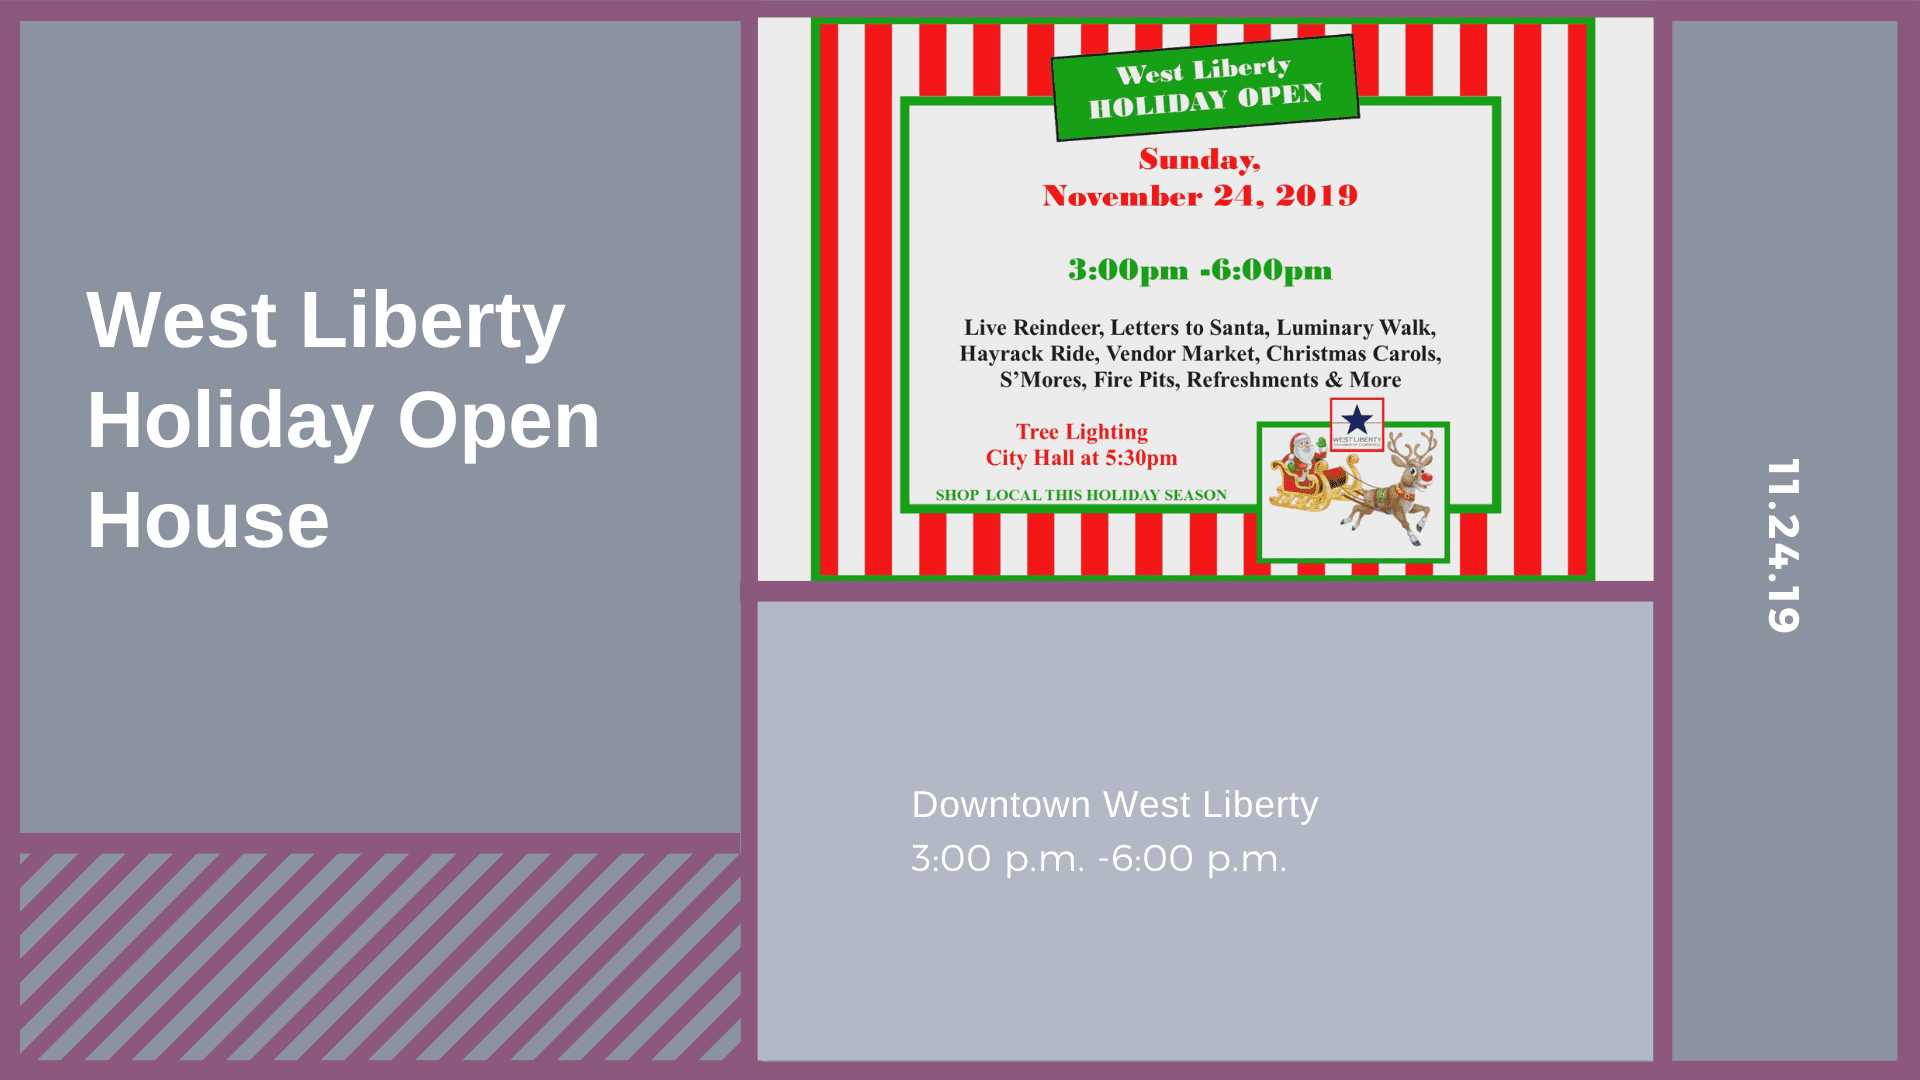 West Liberty Holiday Open House